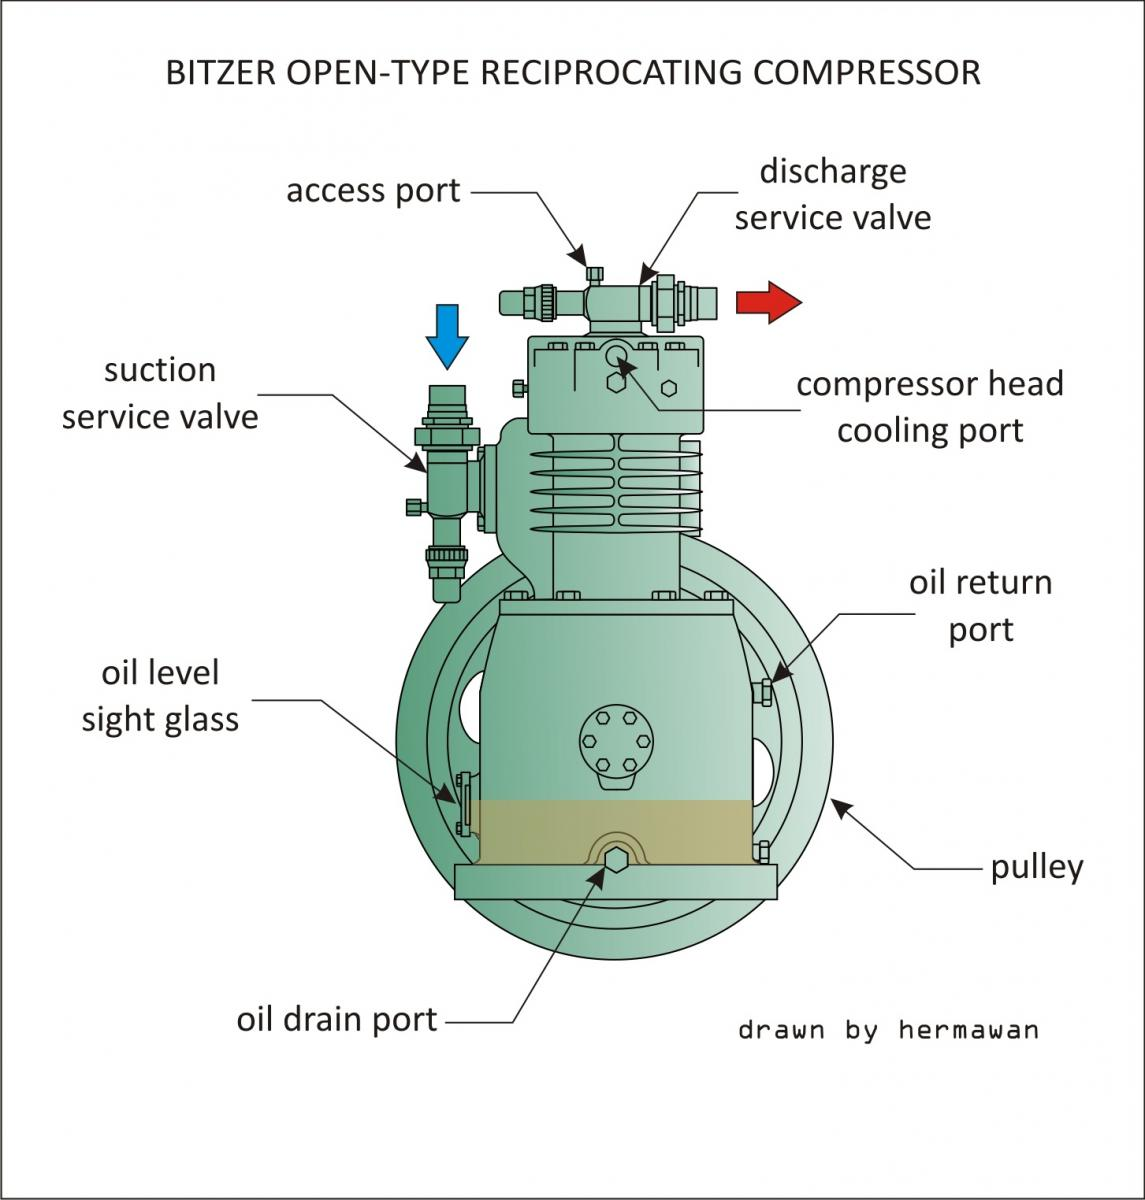 Air Compressor Wiring Diagram 240v Refrigerator 230v Bitzer Open Type Reciprocating Members Gallery Rh Mechanical Engg Com Craftsman